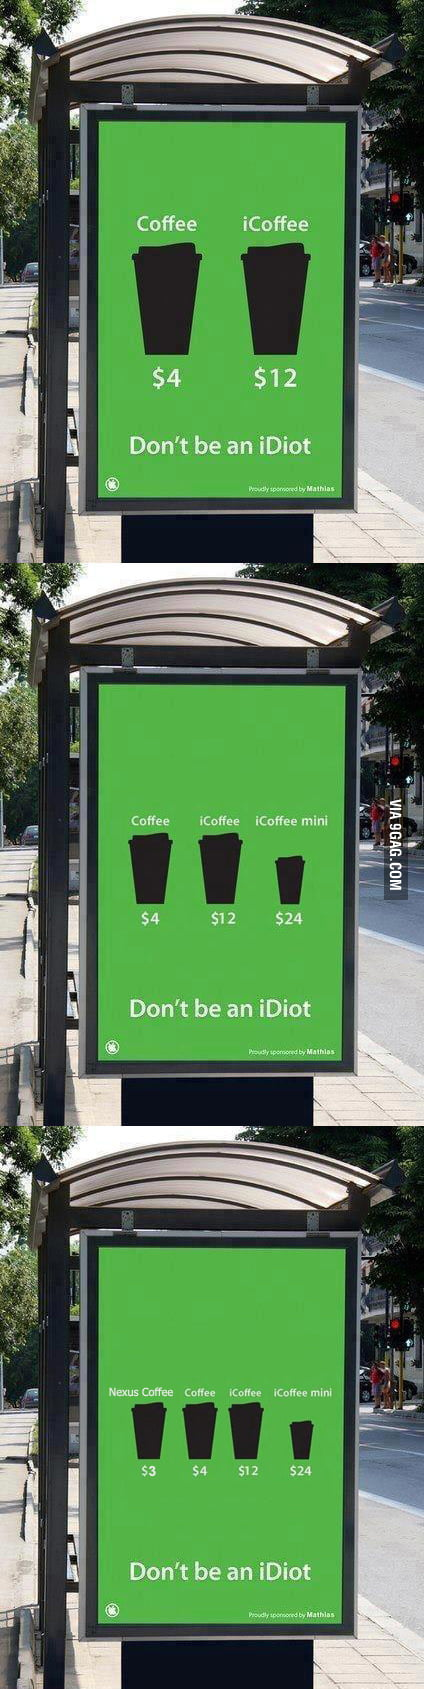 Dont' Be an iDiot...wait